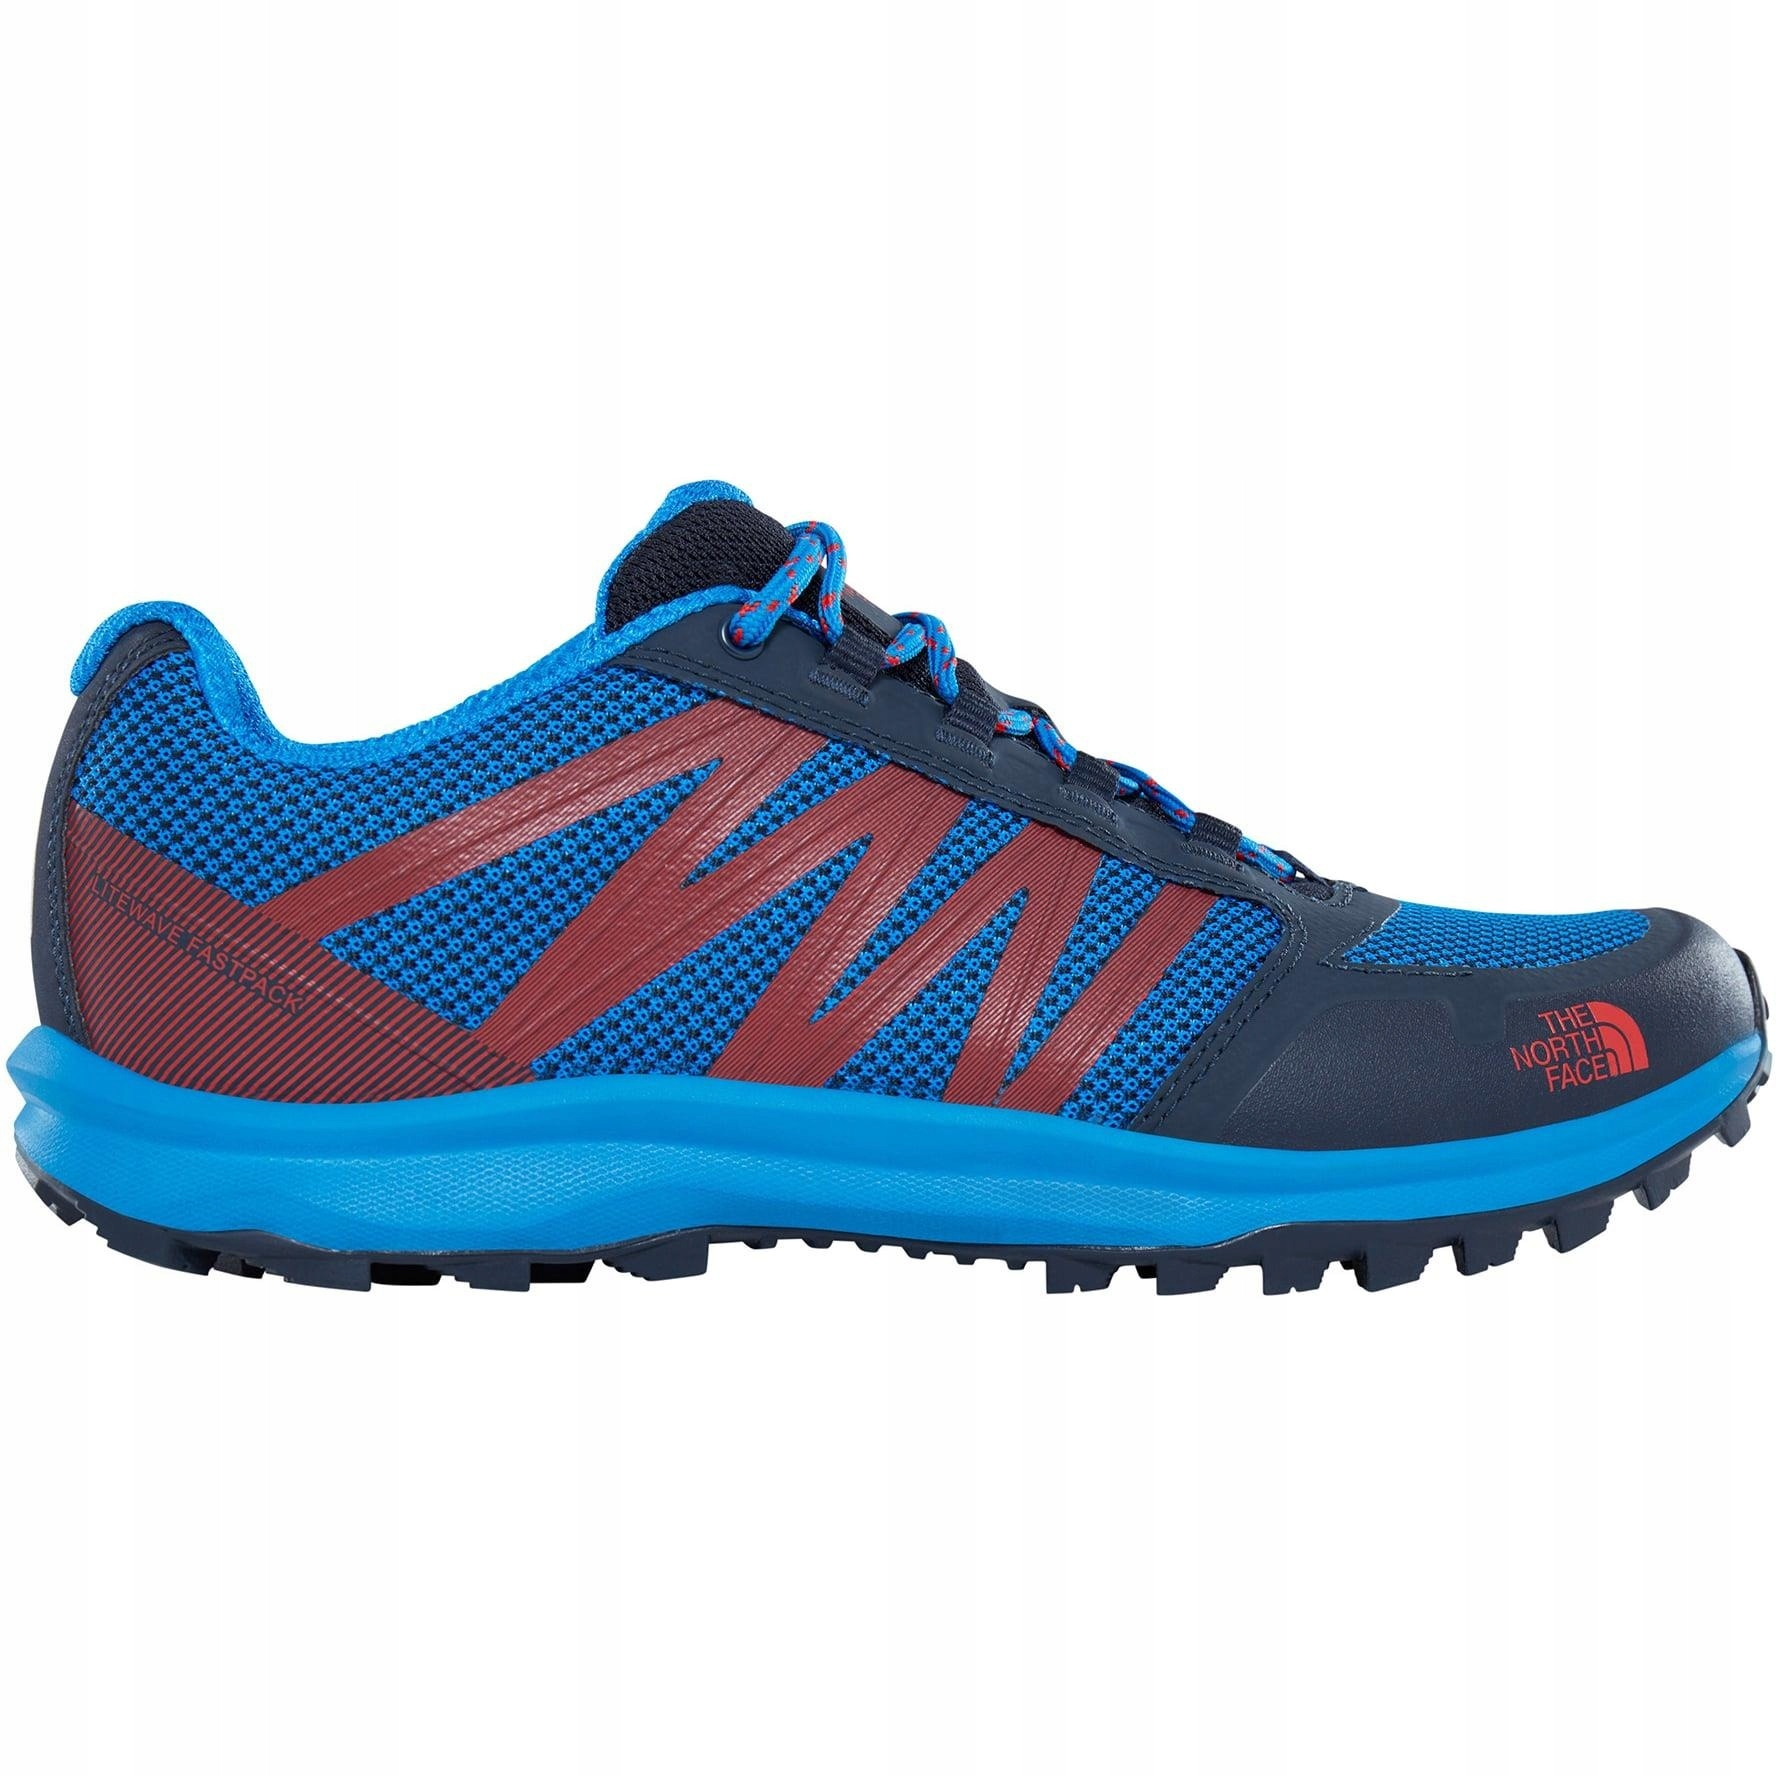 ab379392 BUTY THE NORTH FACE LITEWAVE FP T93FX6THZ r 45,5 - 7400461892 ...